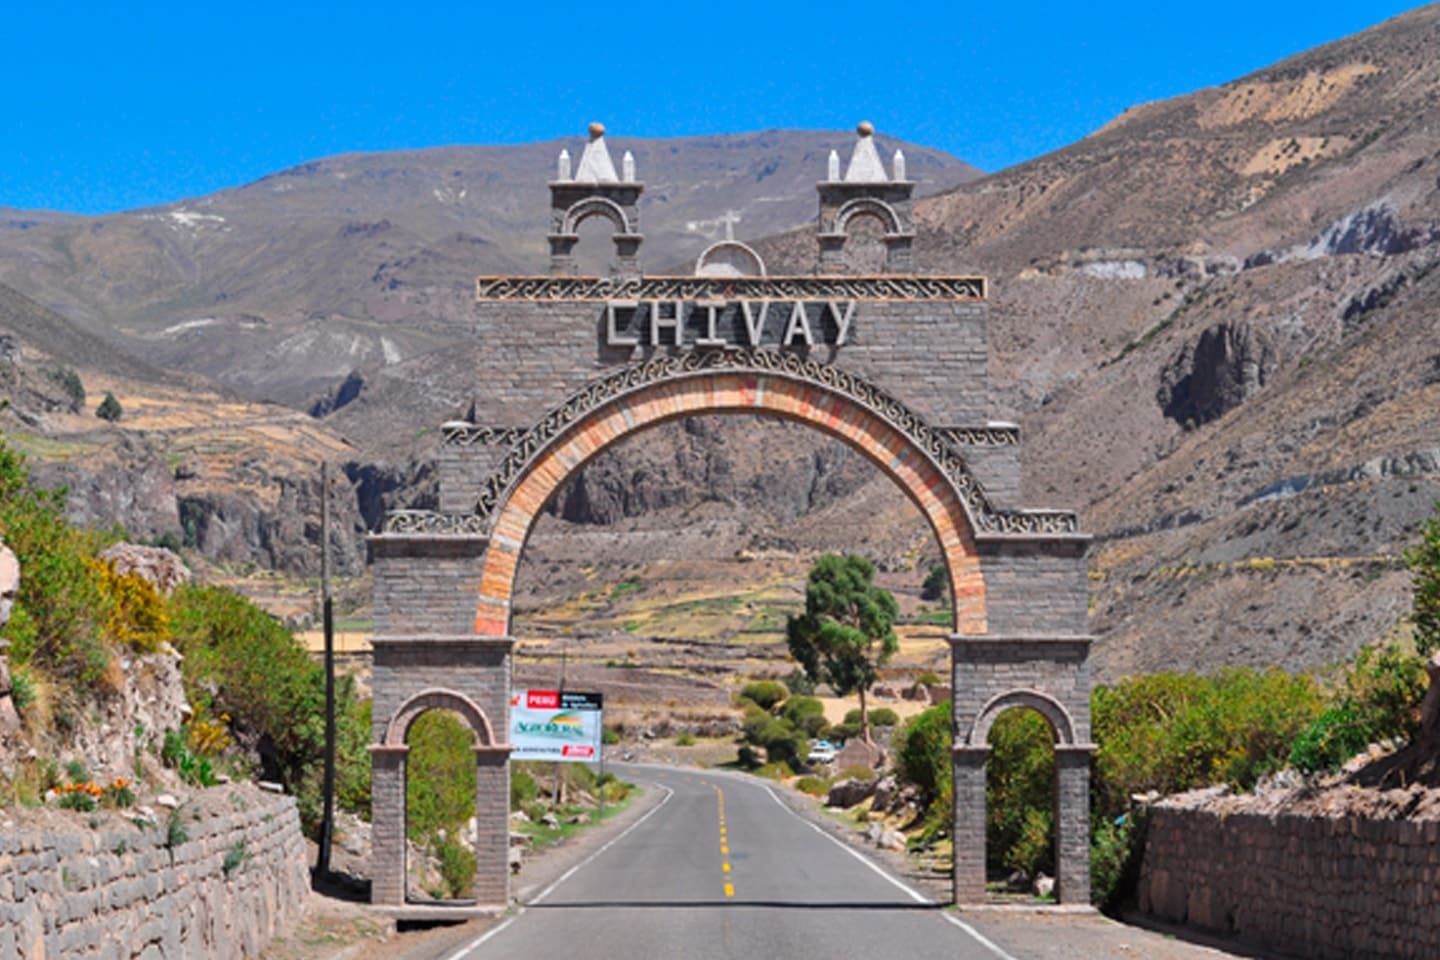 Chivay, Colca, Canyon, Caylloma, Valley - 4M Express Bus Peru